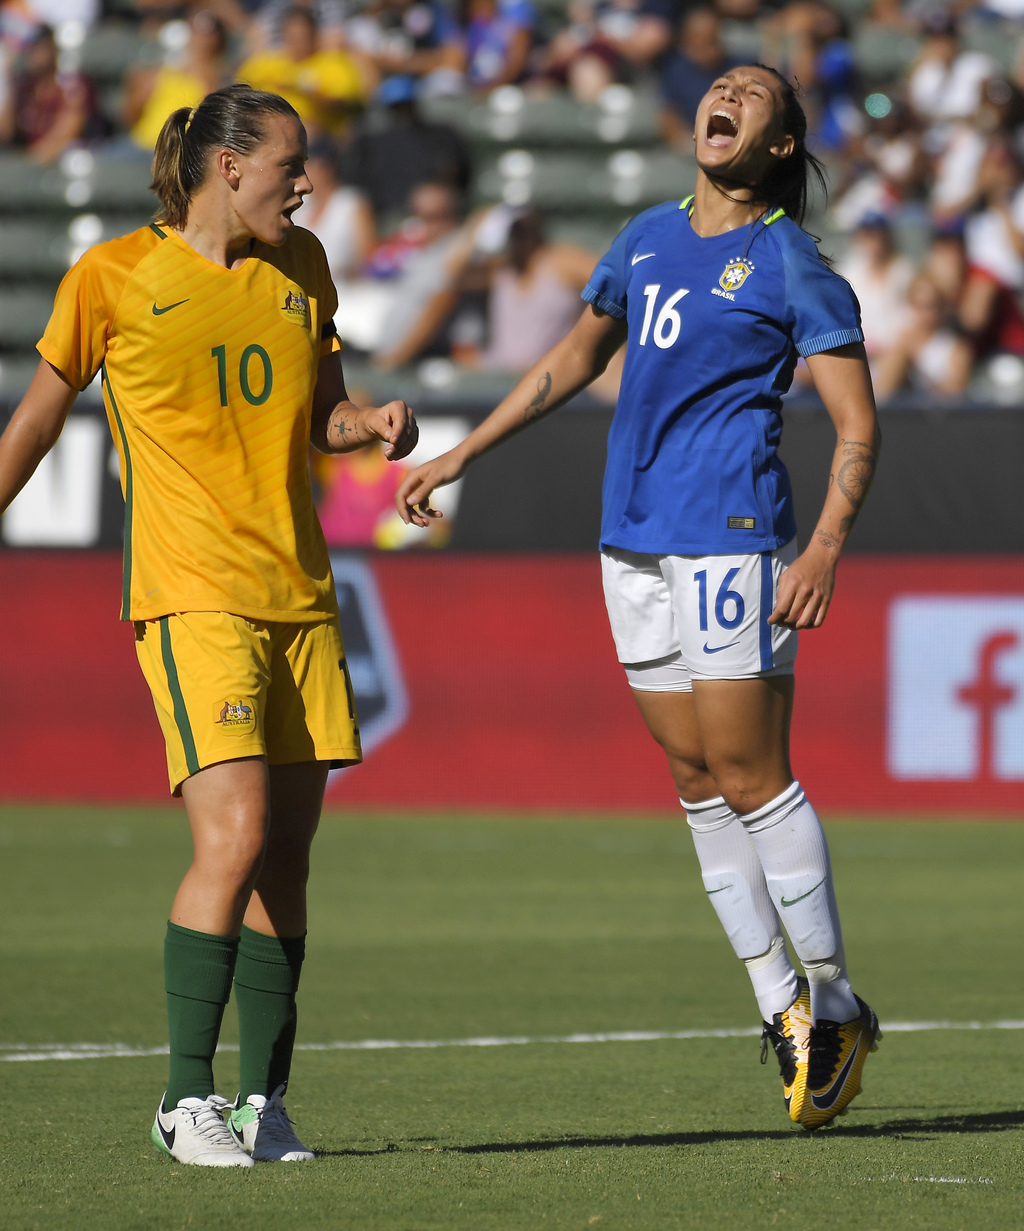 Brazil's Bia Zaneratto, right, reacts after missing a shot as Australia's Emily Van Egmond watches during the first half of a Tournament of Nations so...